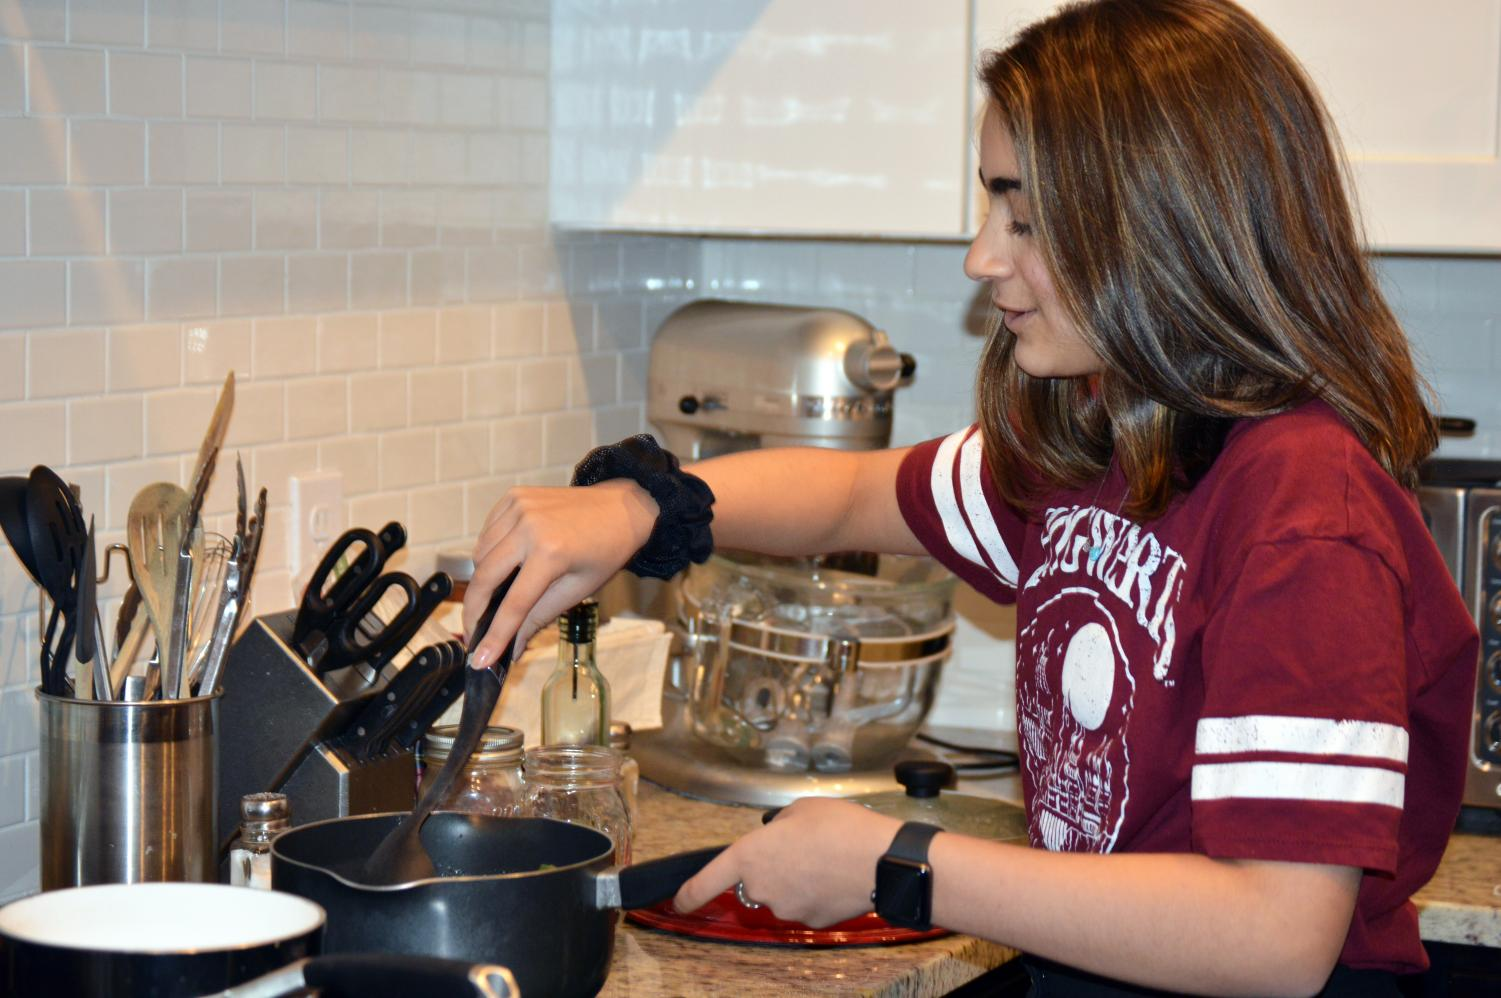 7th grader Kiran Alwy cooks curry for dinner Nov. 18. She will be showcasing her cooking skills her dad taught her on Chopped Jr., which started airing Nov. 19